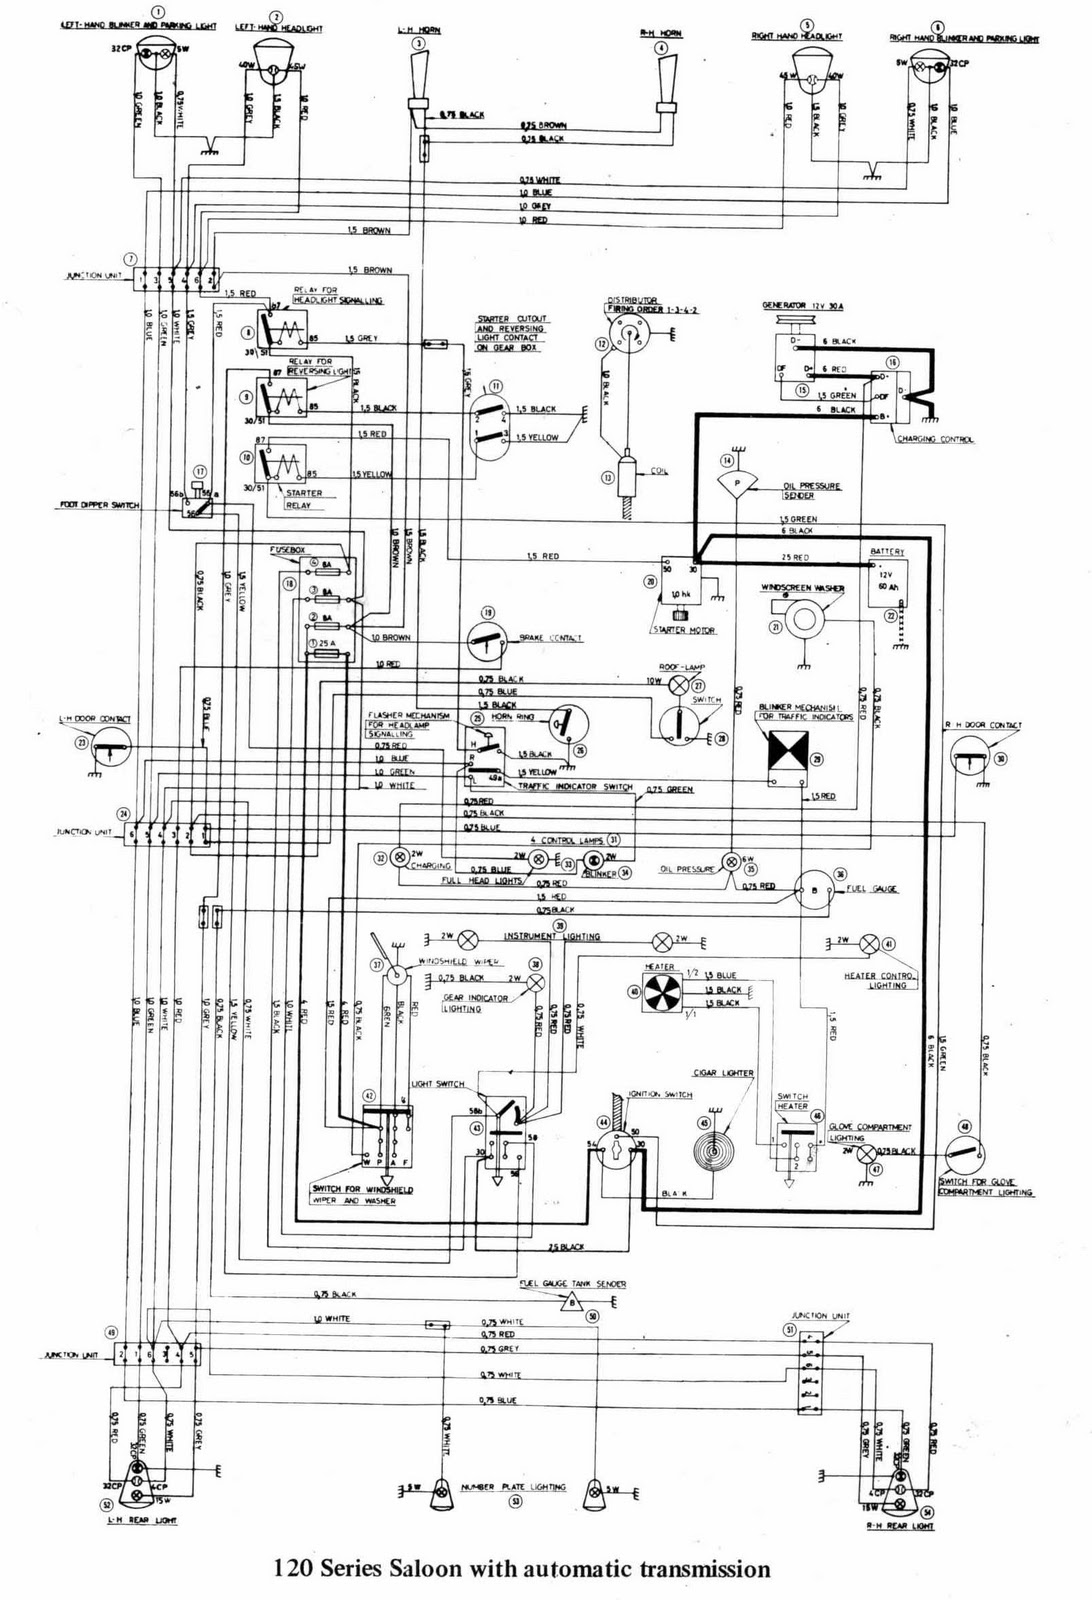 volvo truck wiring diagrams wiring diagram blogs semi truck radio wiring harness 1996 volvo semi truck wiring diagram [ 1092 x 1600 Pixel ]